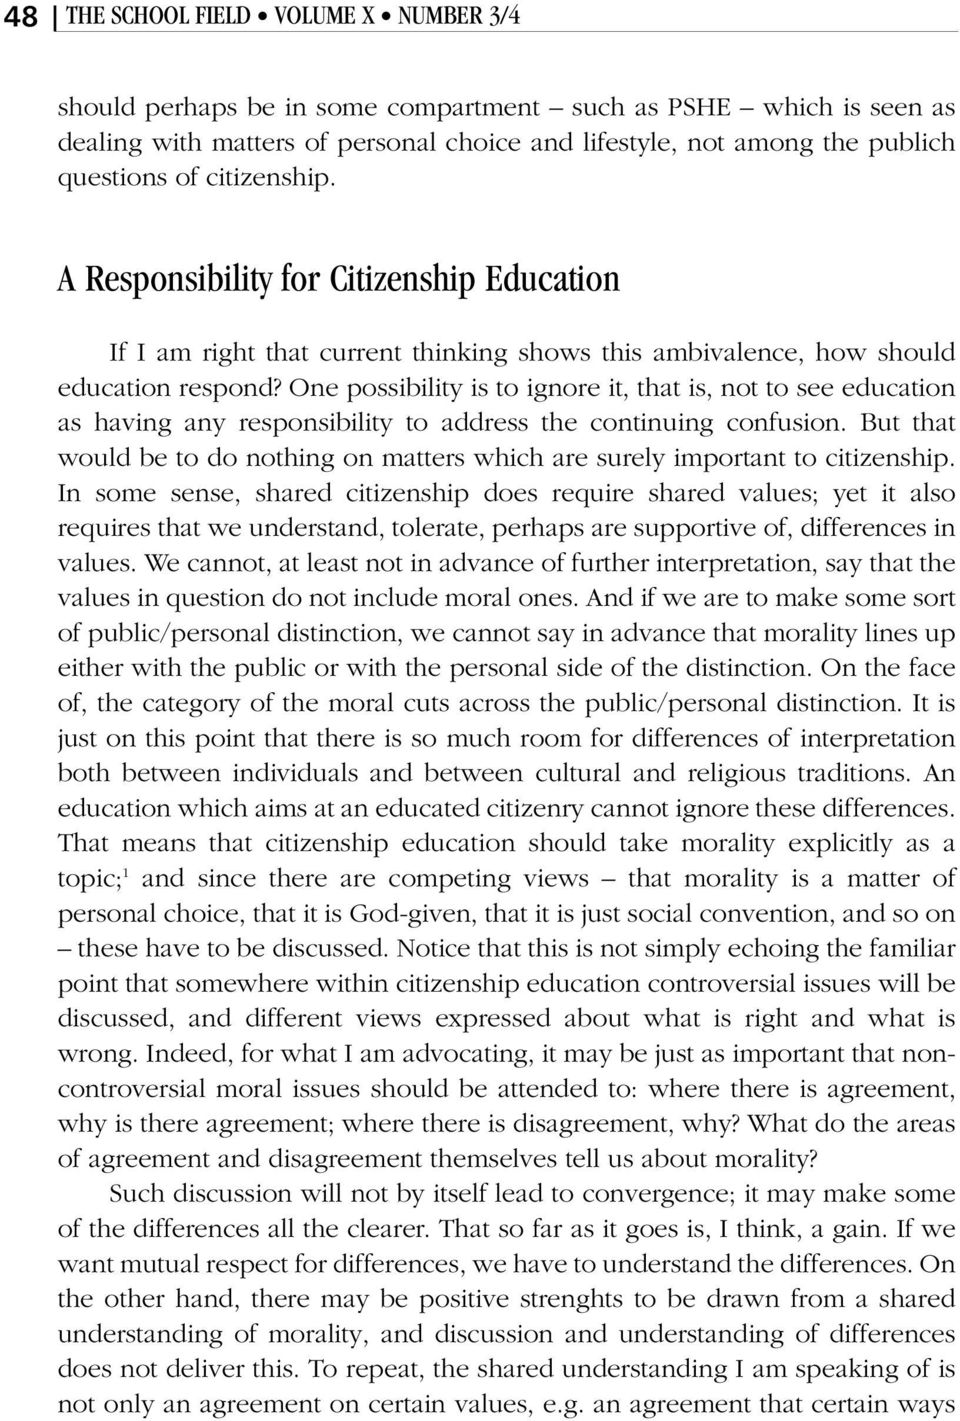 One possibility is to ignore it, that is, not to see education as having any responsibility to address the continuing confusion.